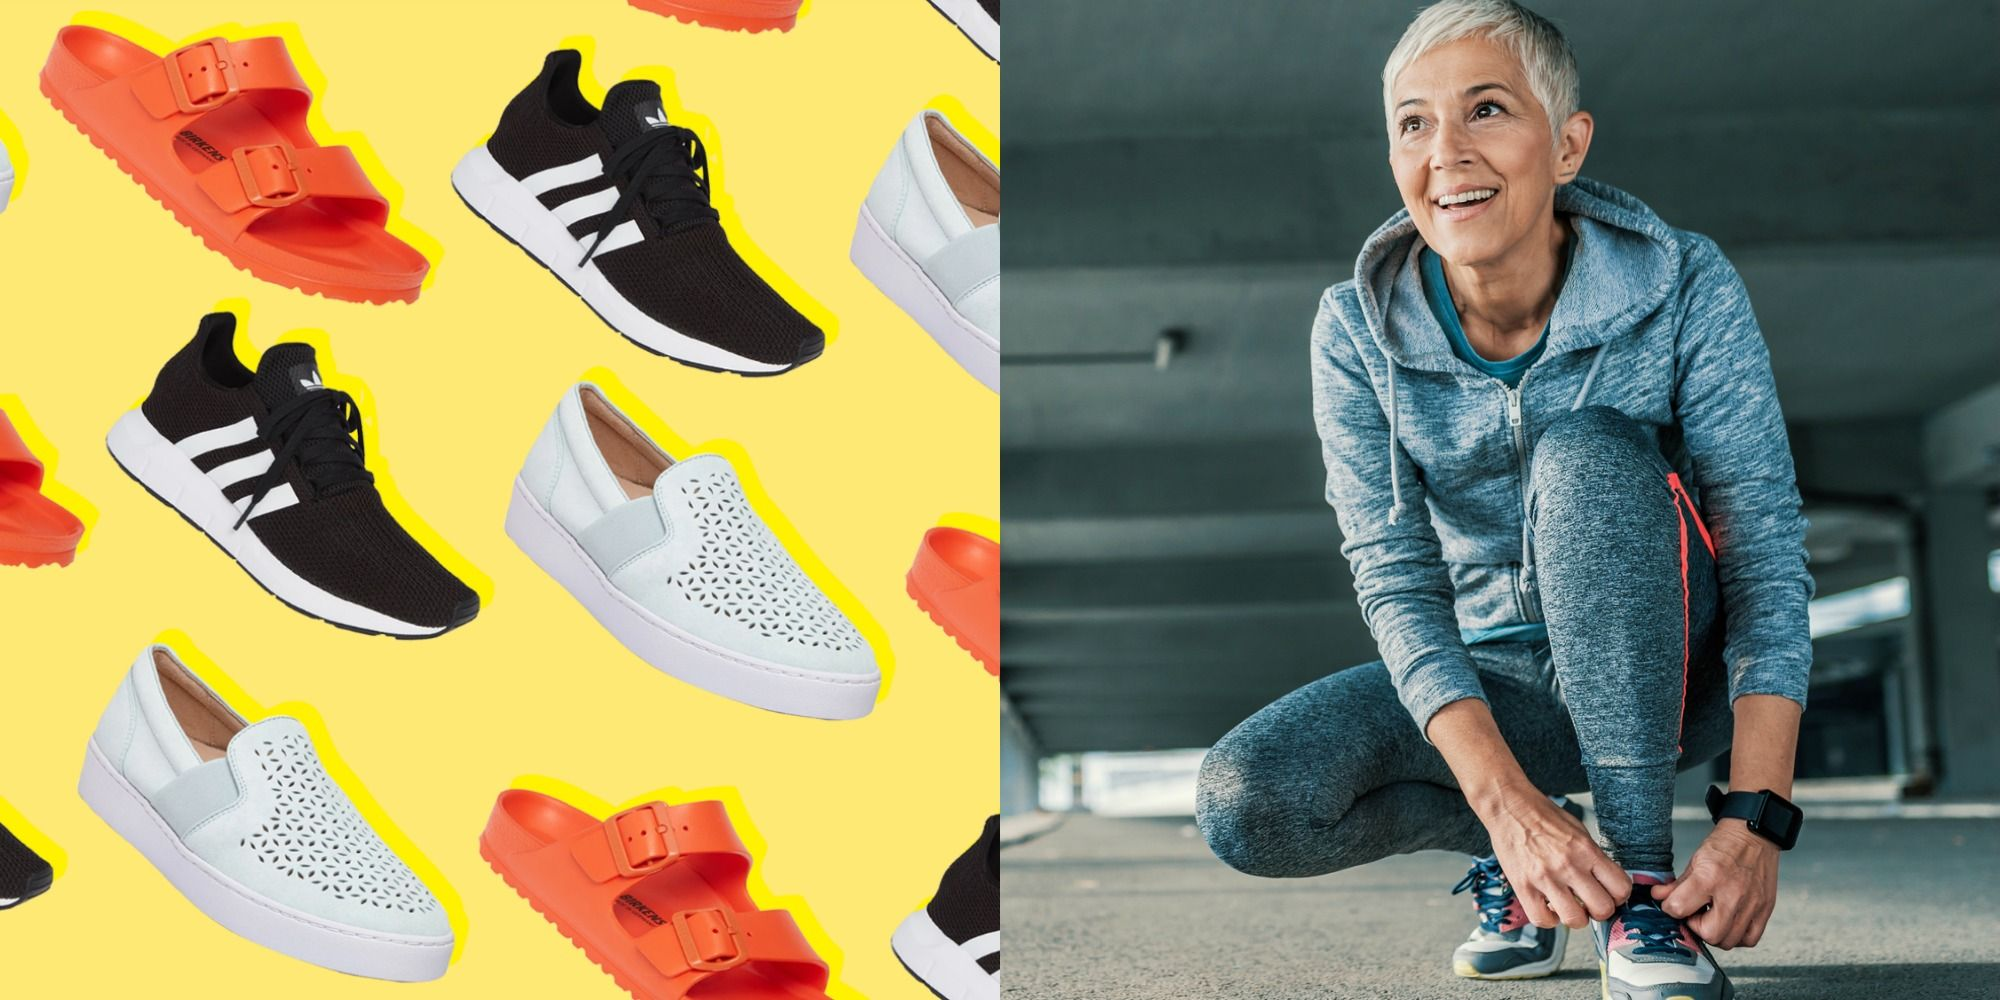 17 Best Shoes for Bunions in 2019, According to Podiatrists